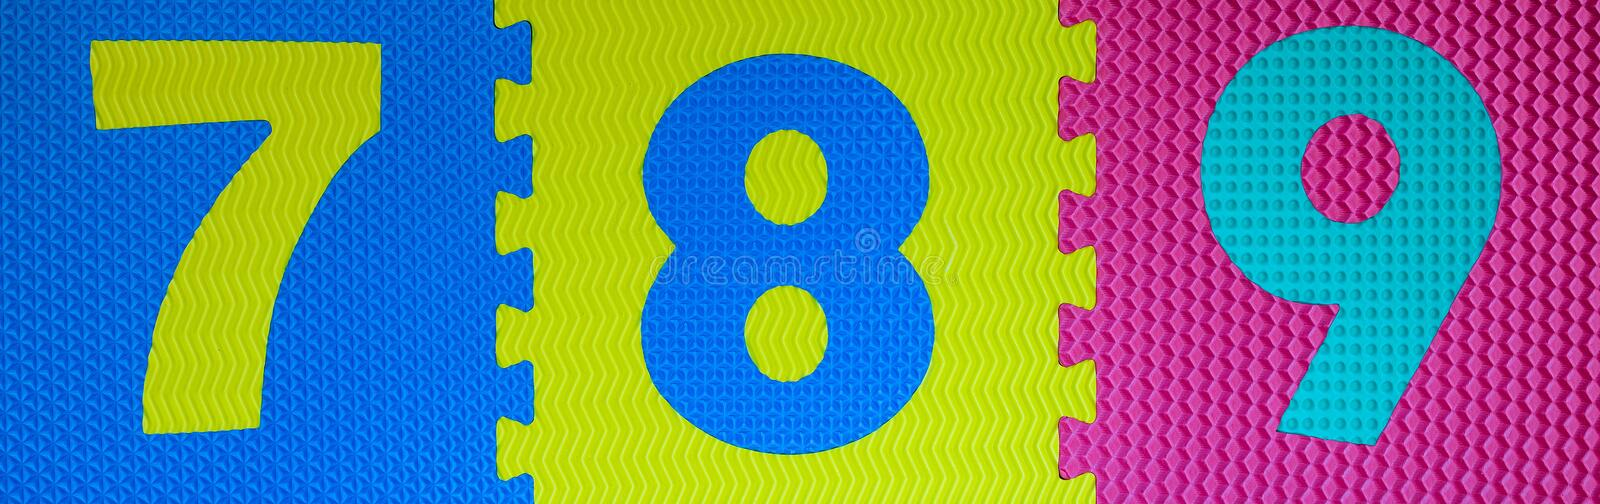 Multicolored Rubber Digits 2. Cut Out Digits Of Toy Rubber Puzzle. Multicolored Playground For Kids royalty free stock image